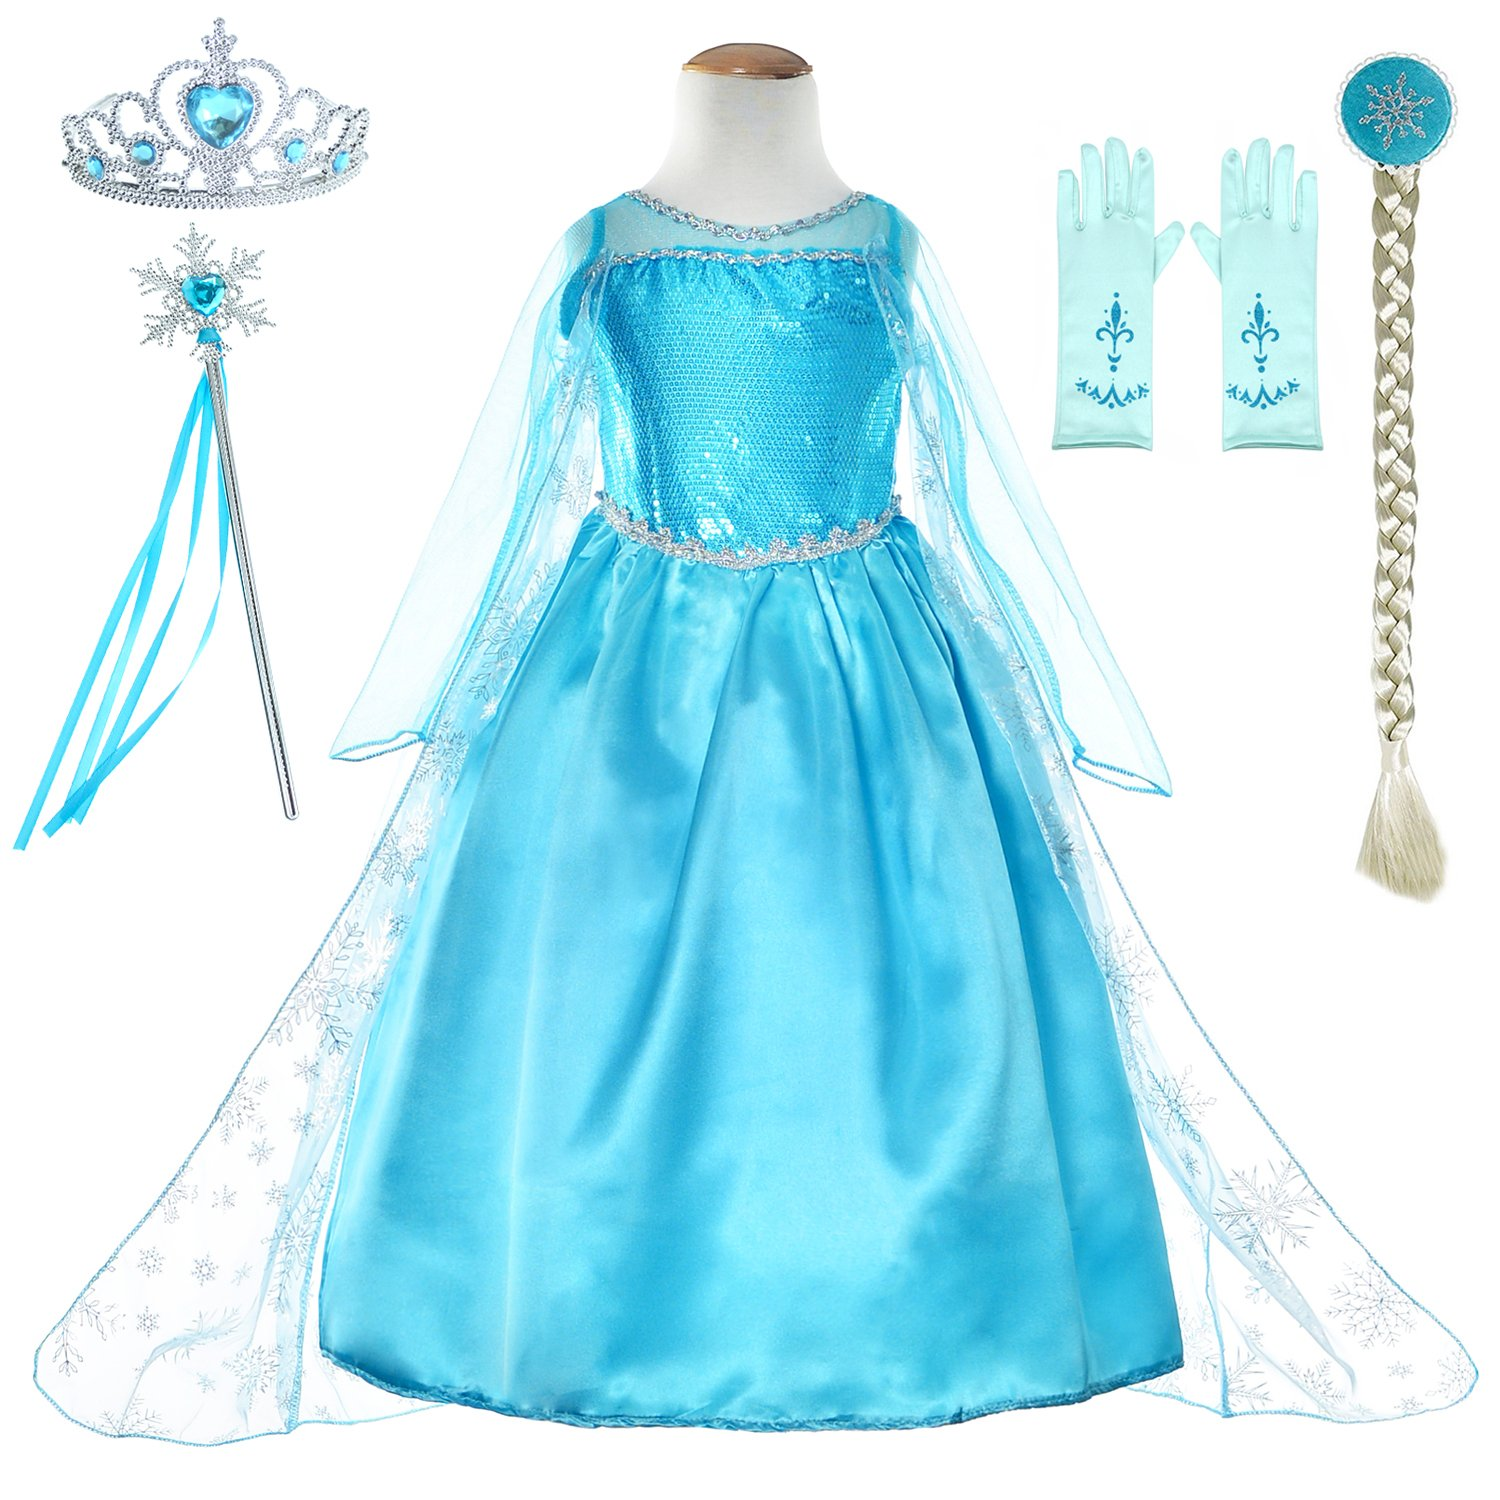 Snow Queen Princess Elsa Costumes Birthday Party Dress Up For Little Girls with Wig,Crown,Mace,Gloves Accessories 4T-5T(110cm)